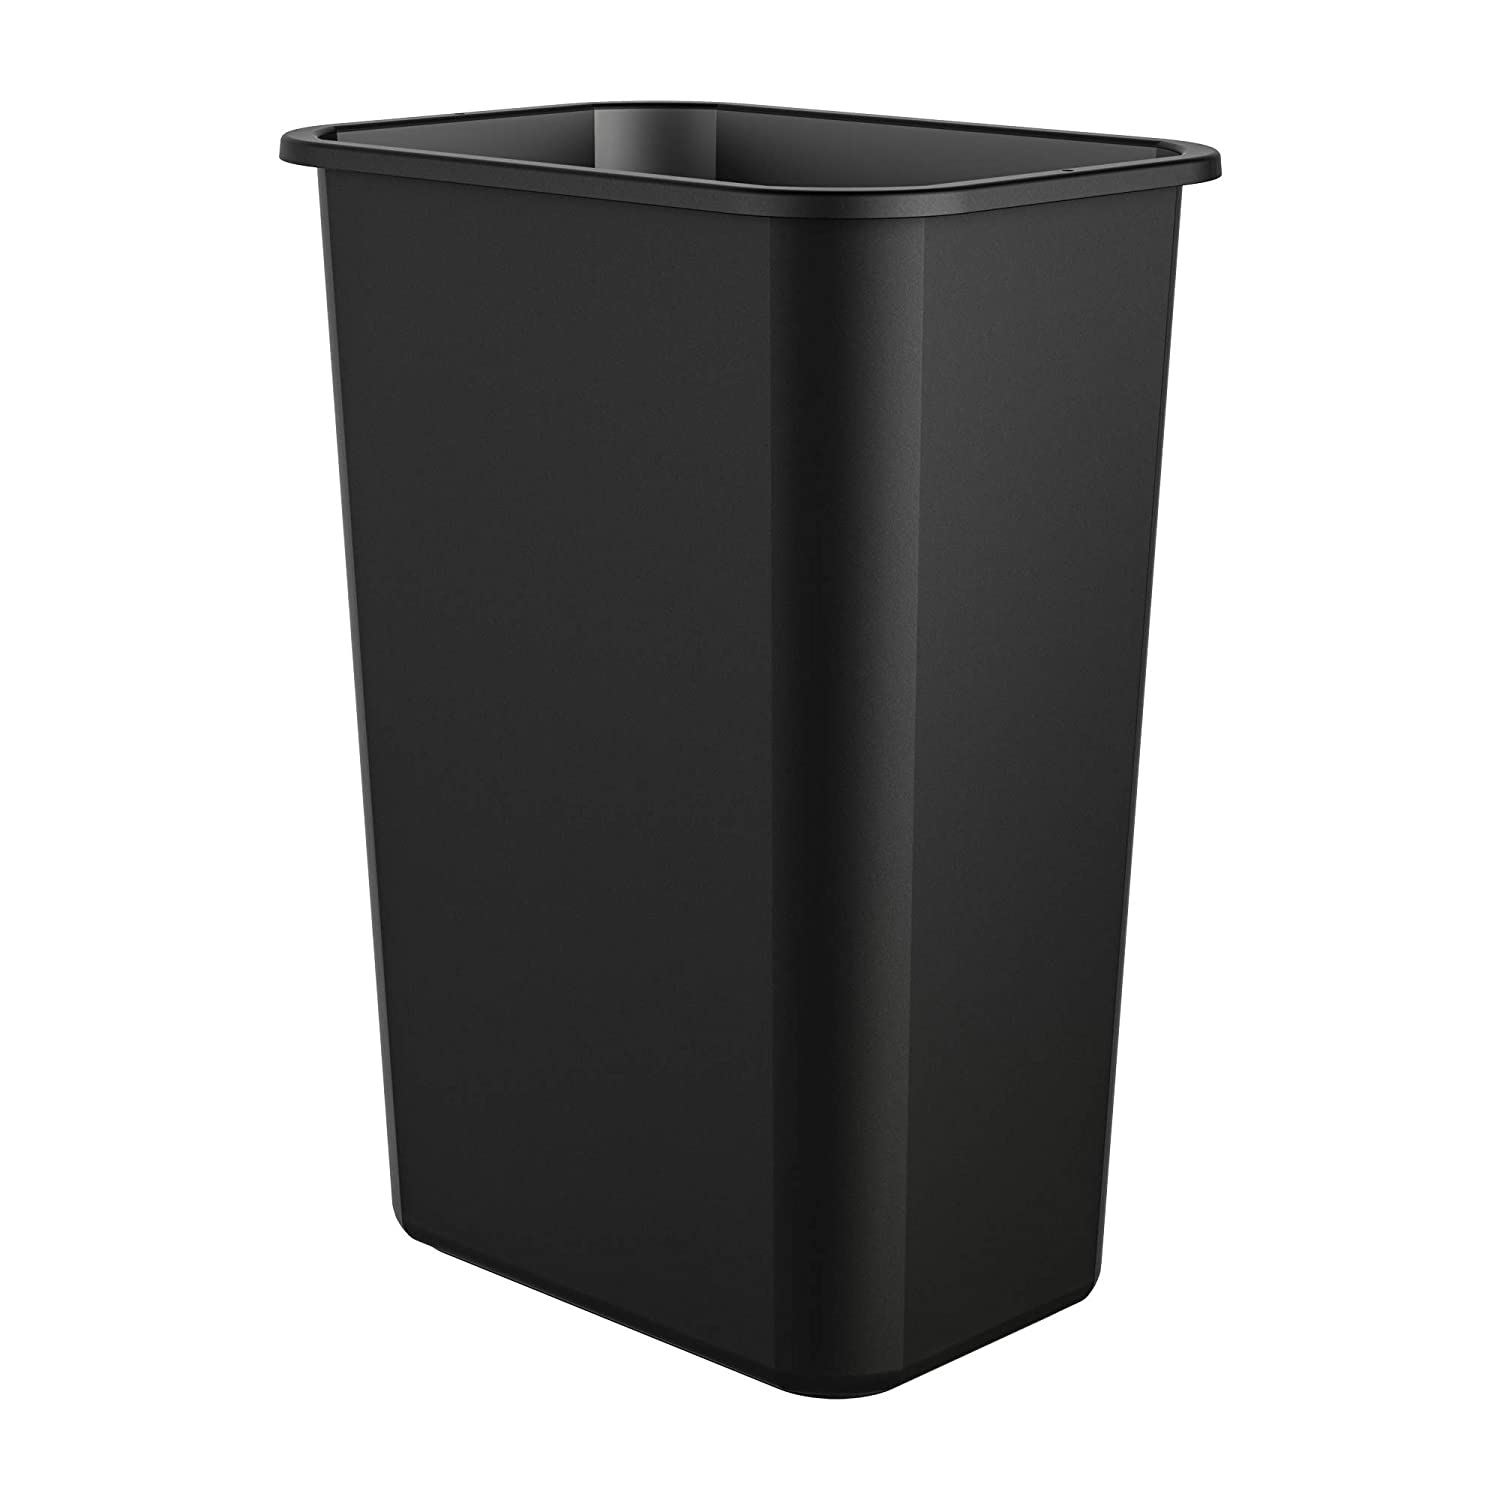 AmazonCommercial 10 Gallon Commercial Waste Basket, Black, 1-Pack